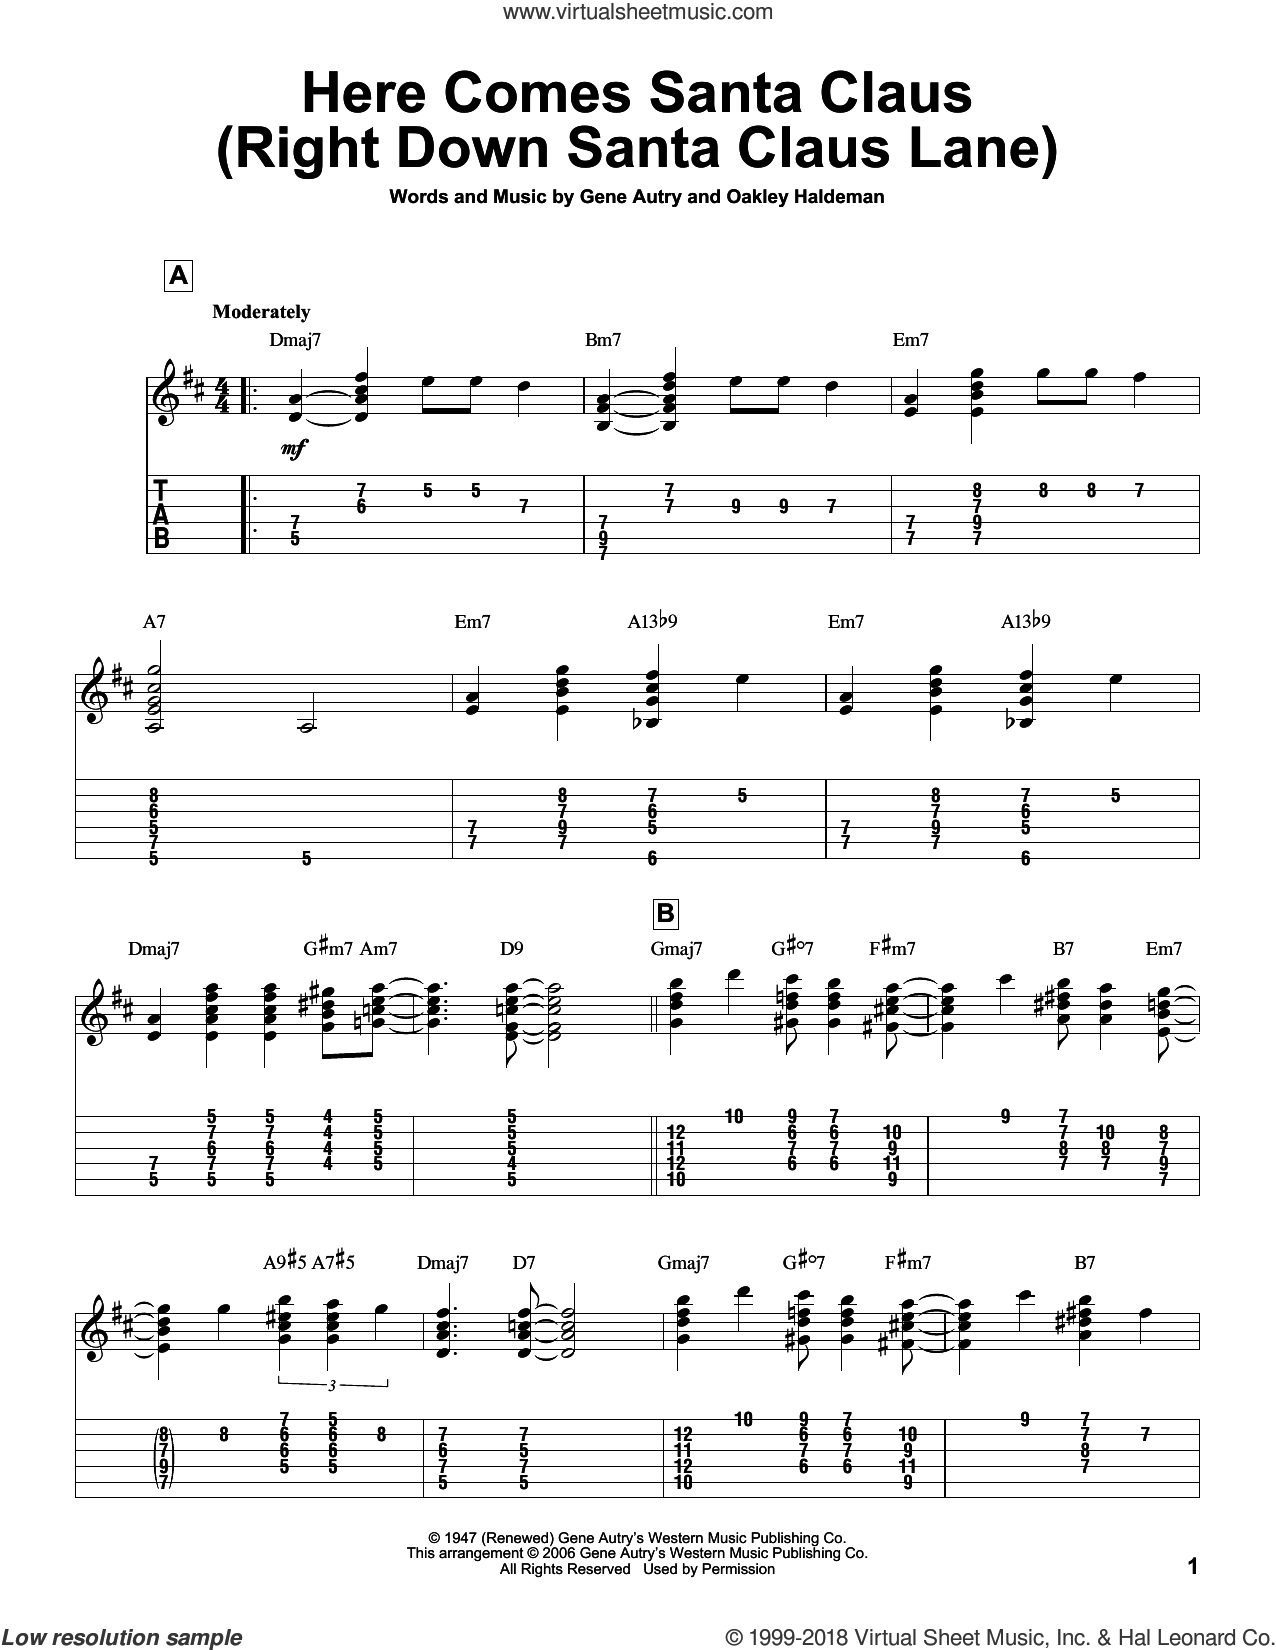 Here Comes Santa Claus (Right Down Santa Claus Lane) sheet music for guitar solo by Gene Autry, intermediate